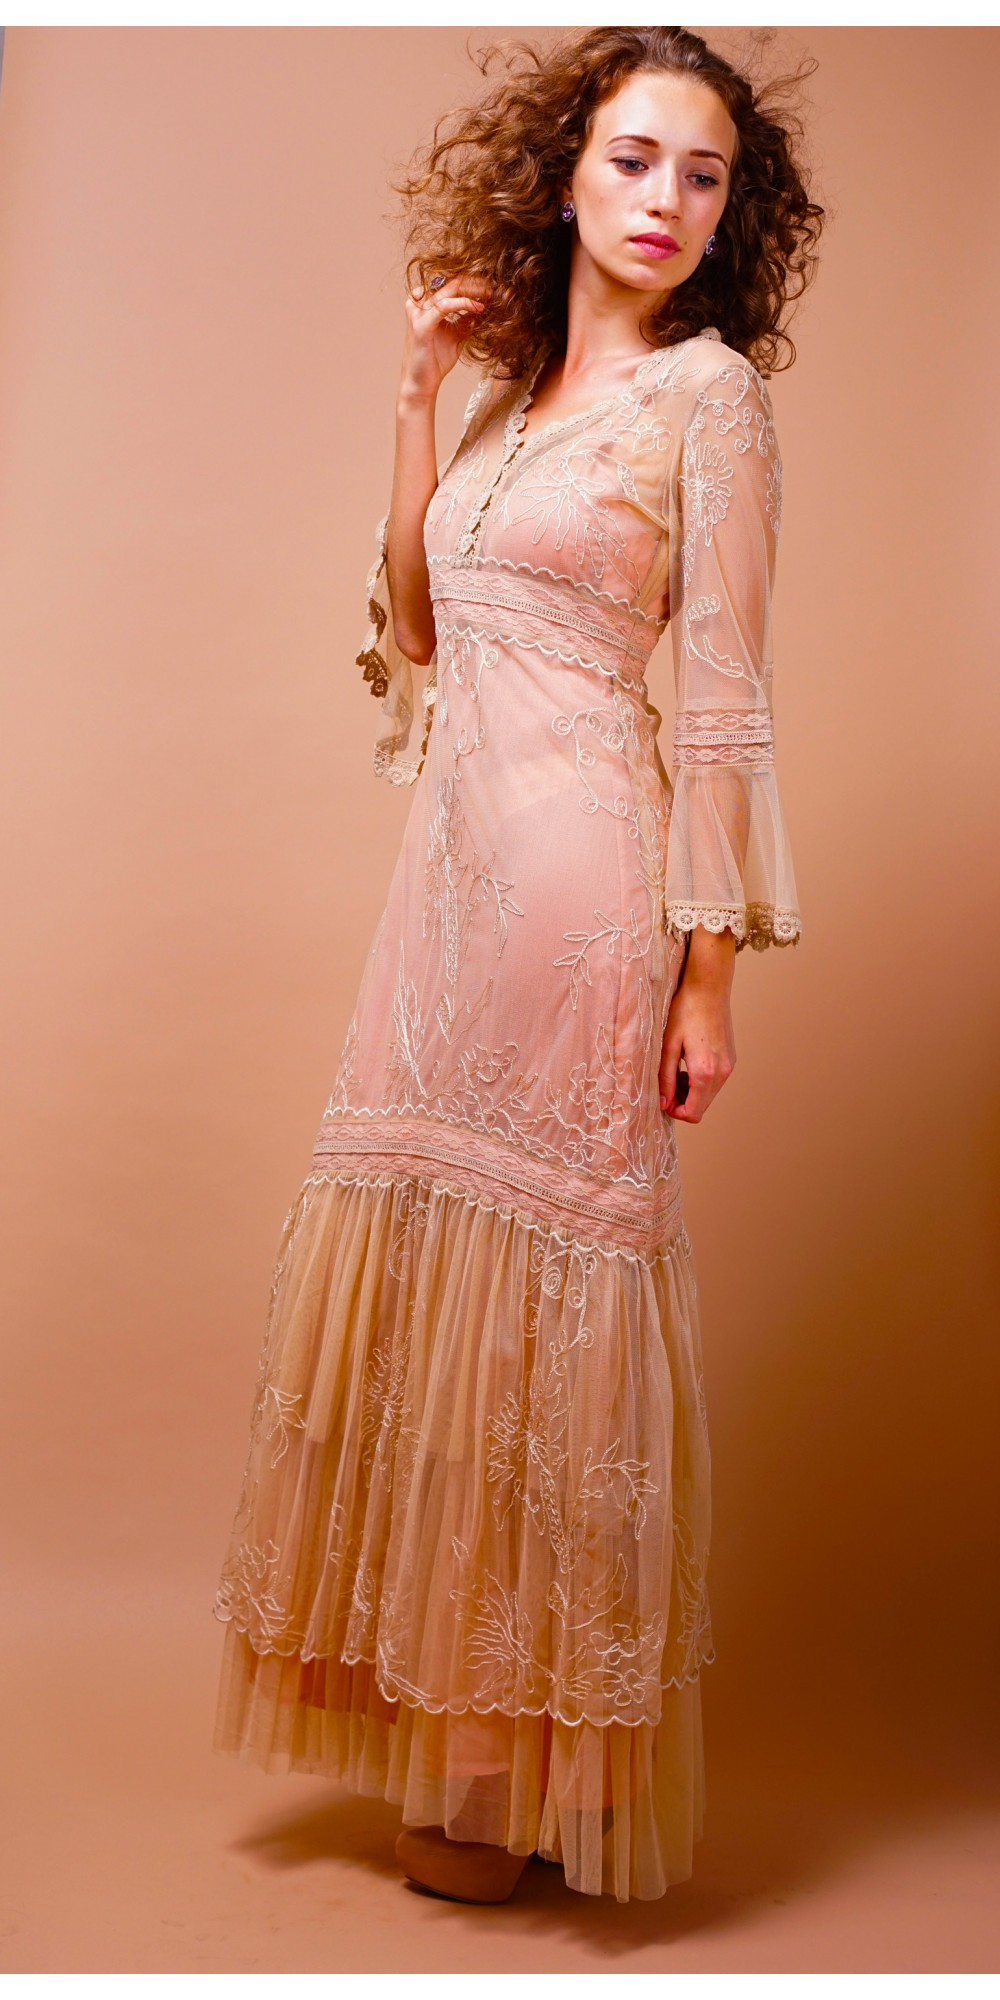 Titanic Empire Waist Wedding Dress in Pink-Champagne by Nataya